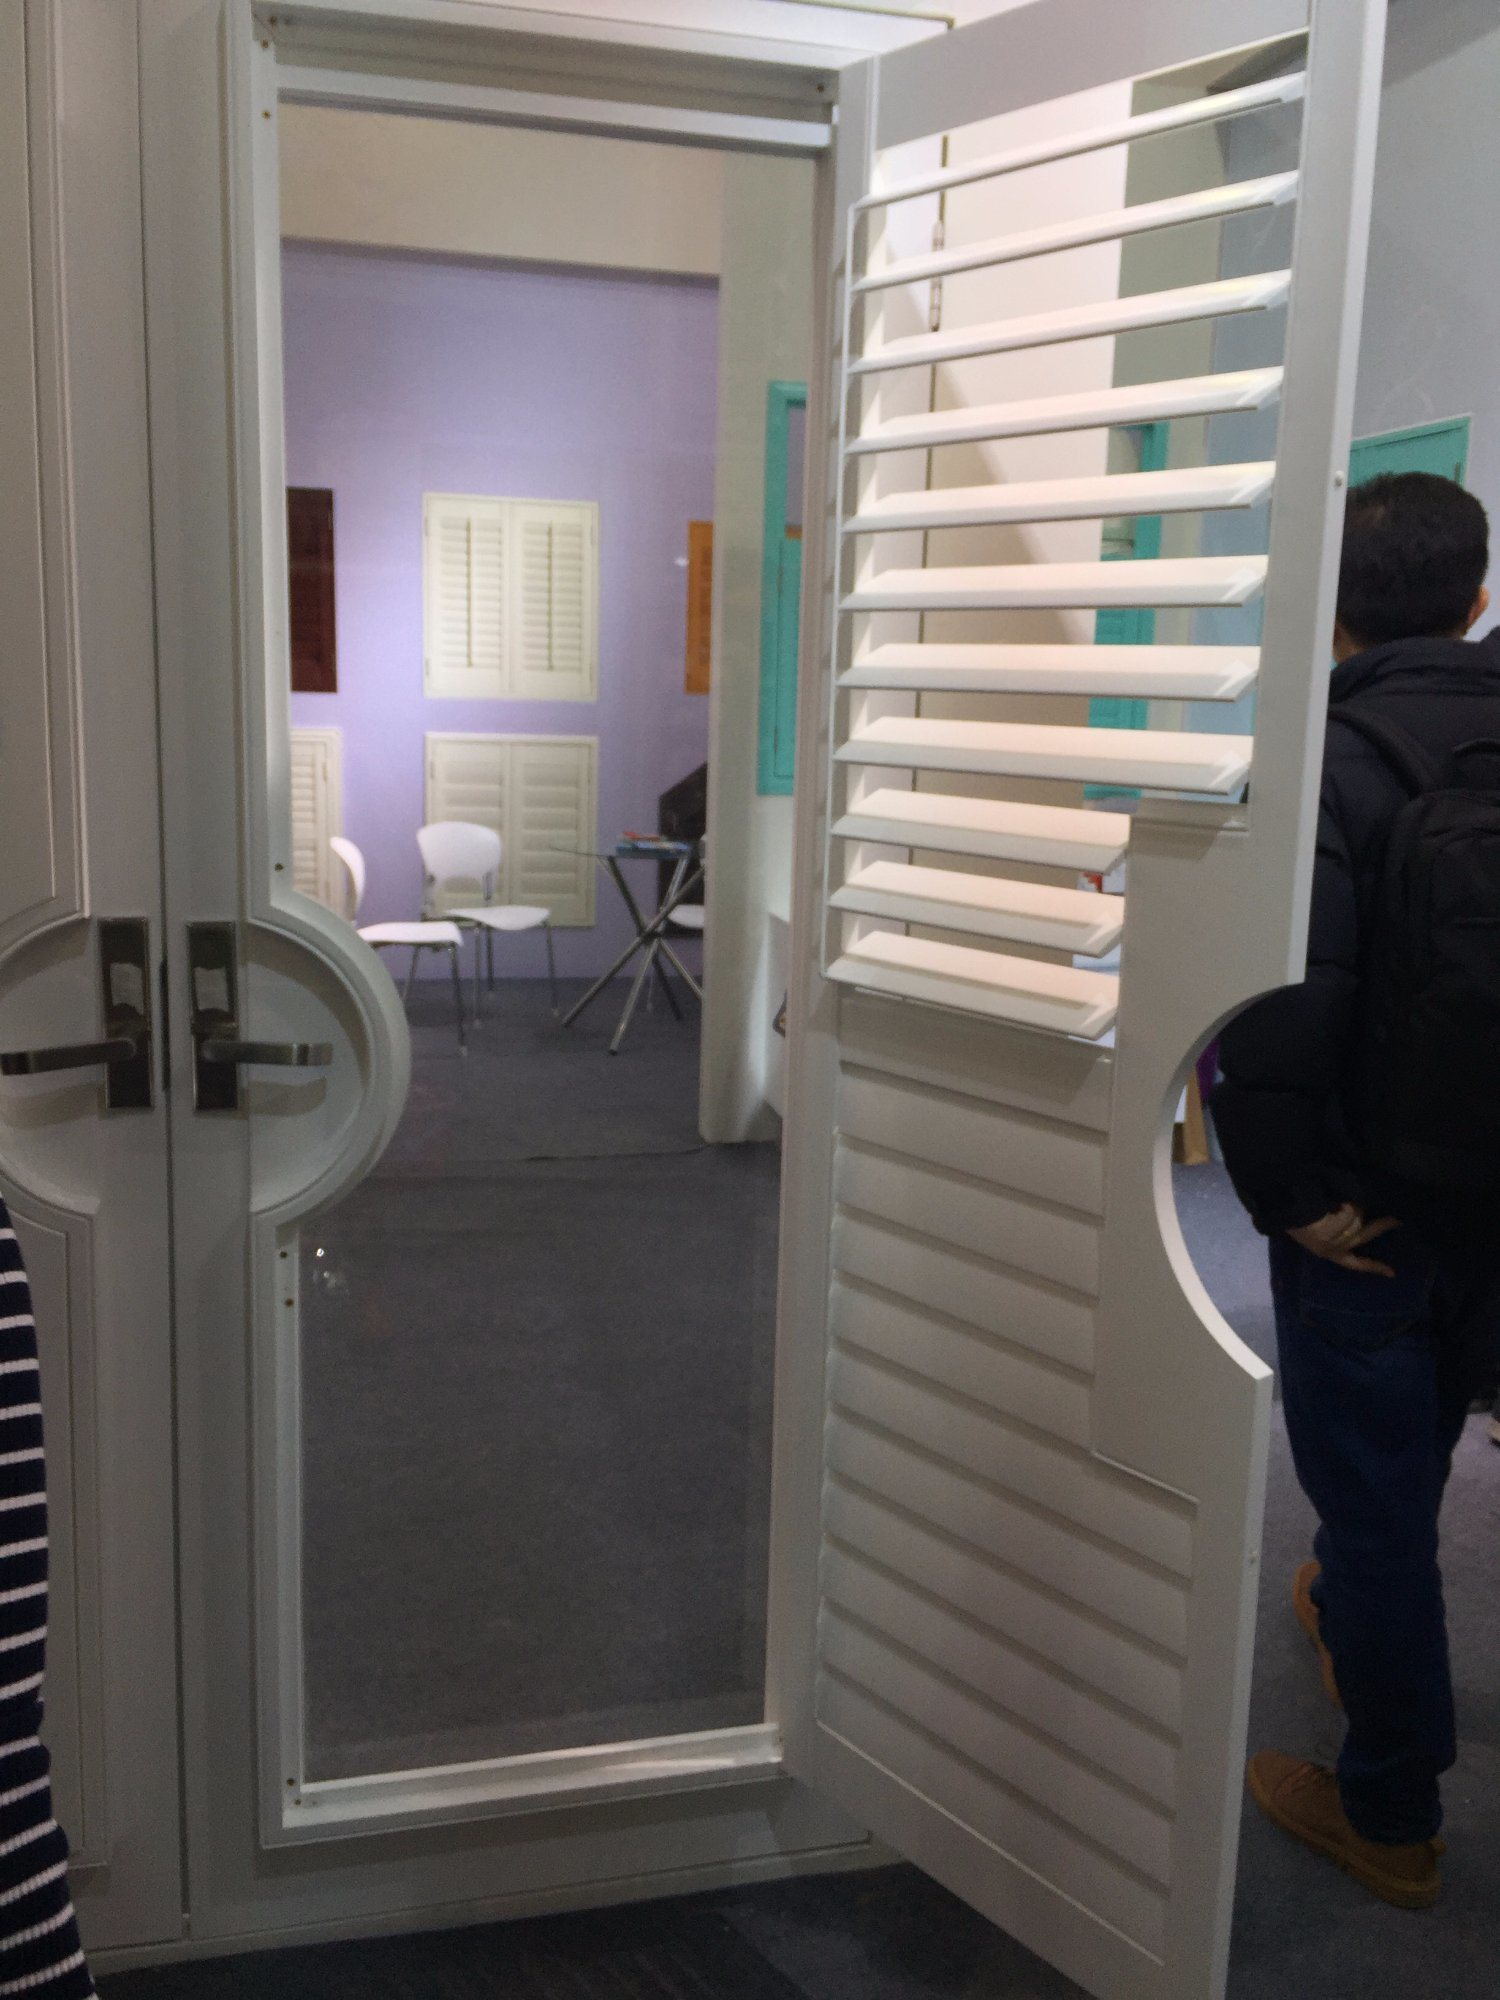 China Plastic French Door Design Adjustable Blinds Plantation Shutters Photos Pictures Made In China Com